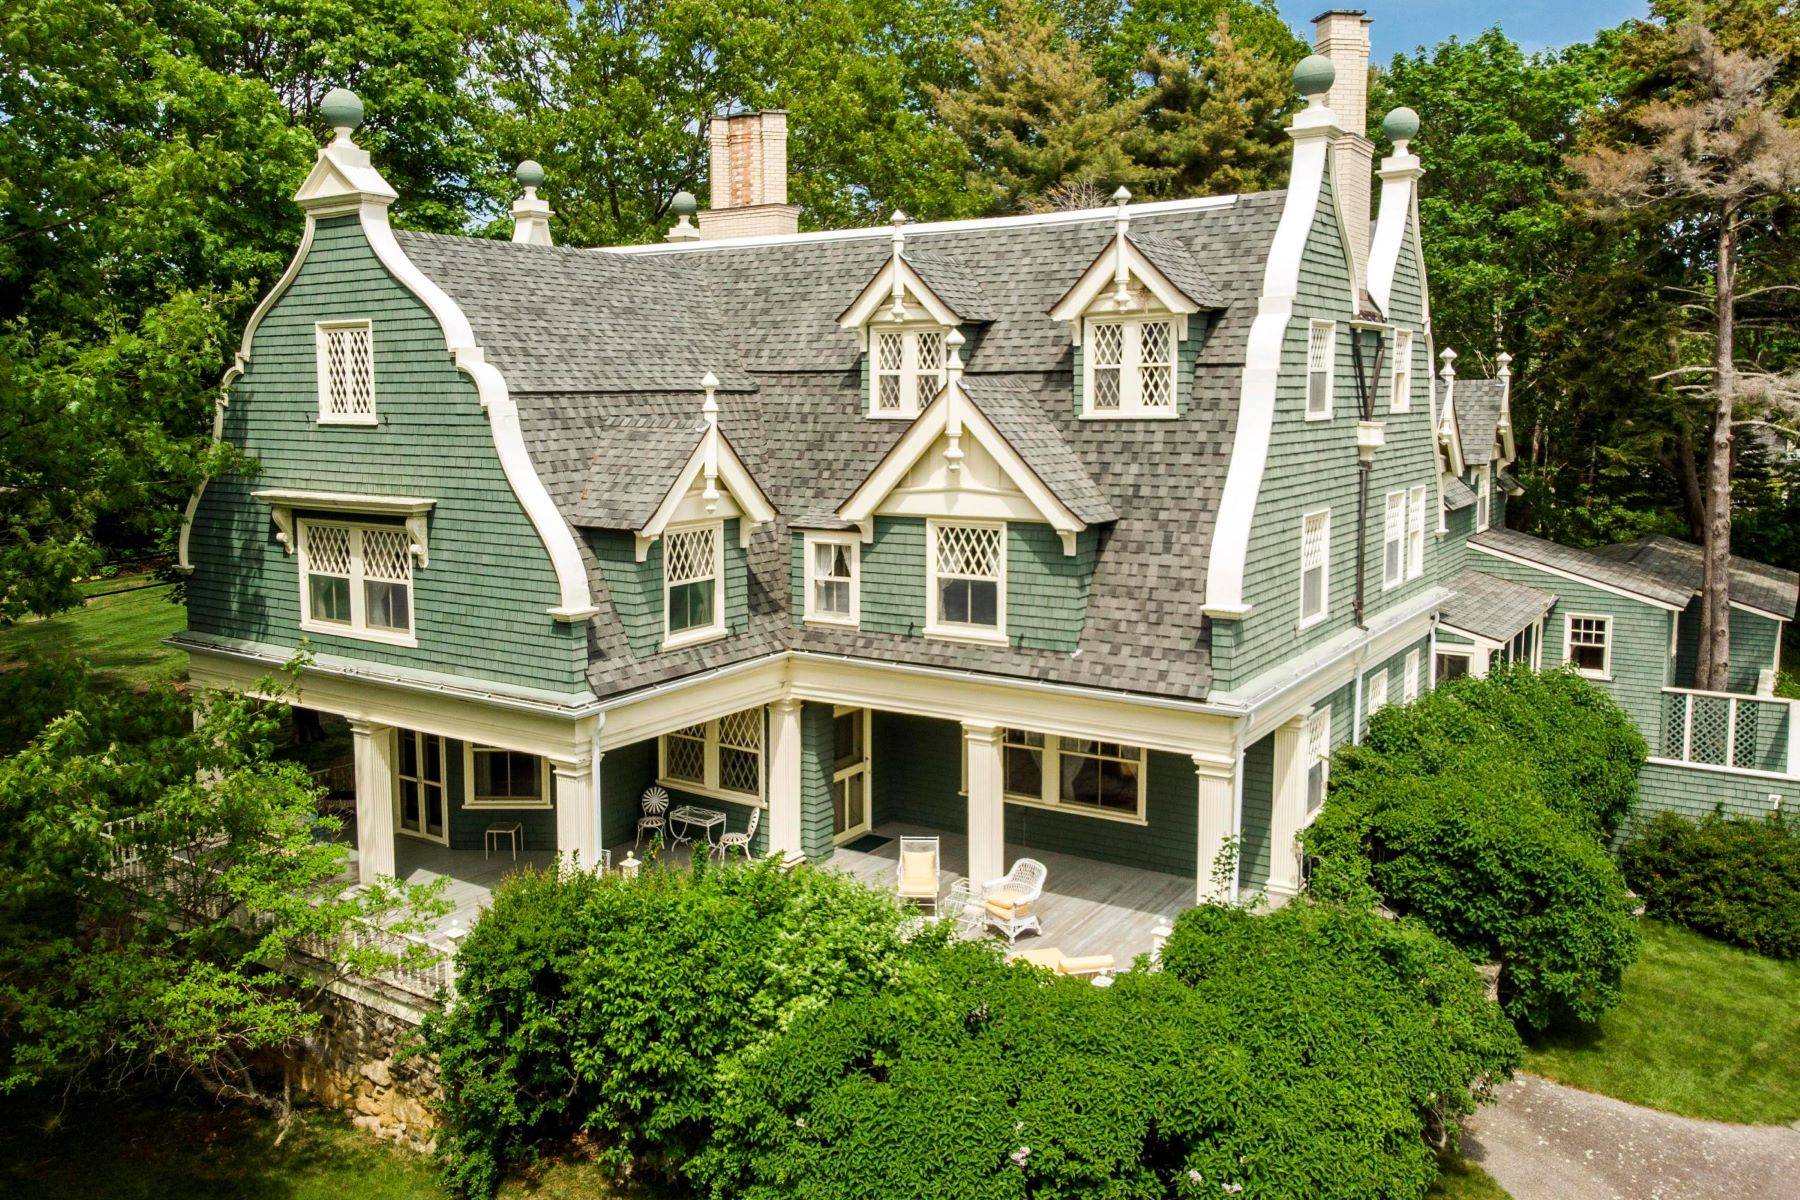 Single Family Homes for Active at 7 Haverhill Avenue Kennebunkport, Maine 04046 United States